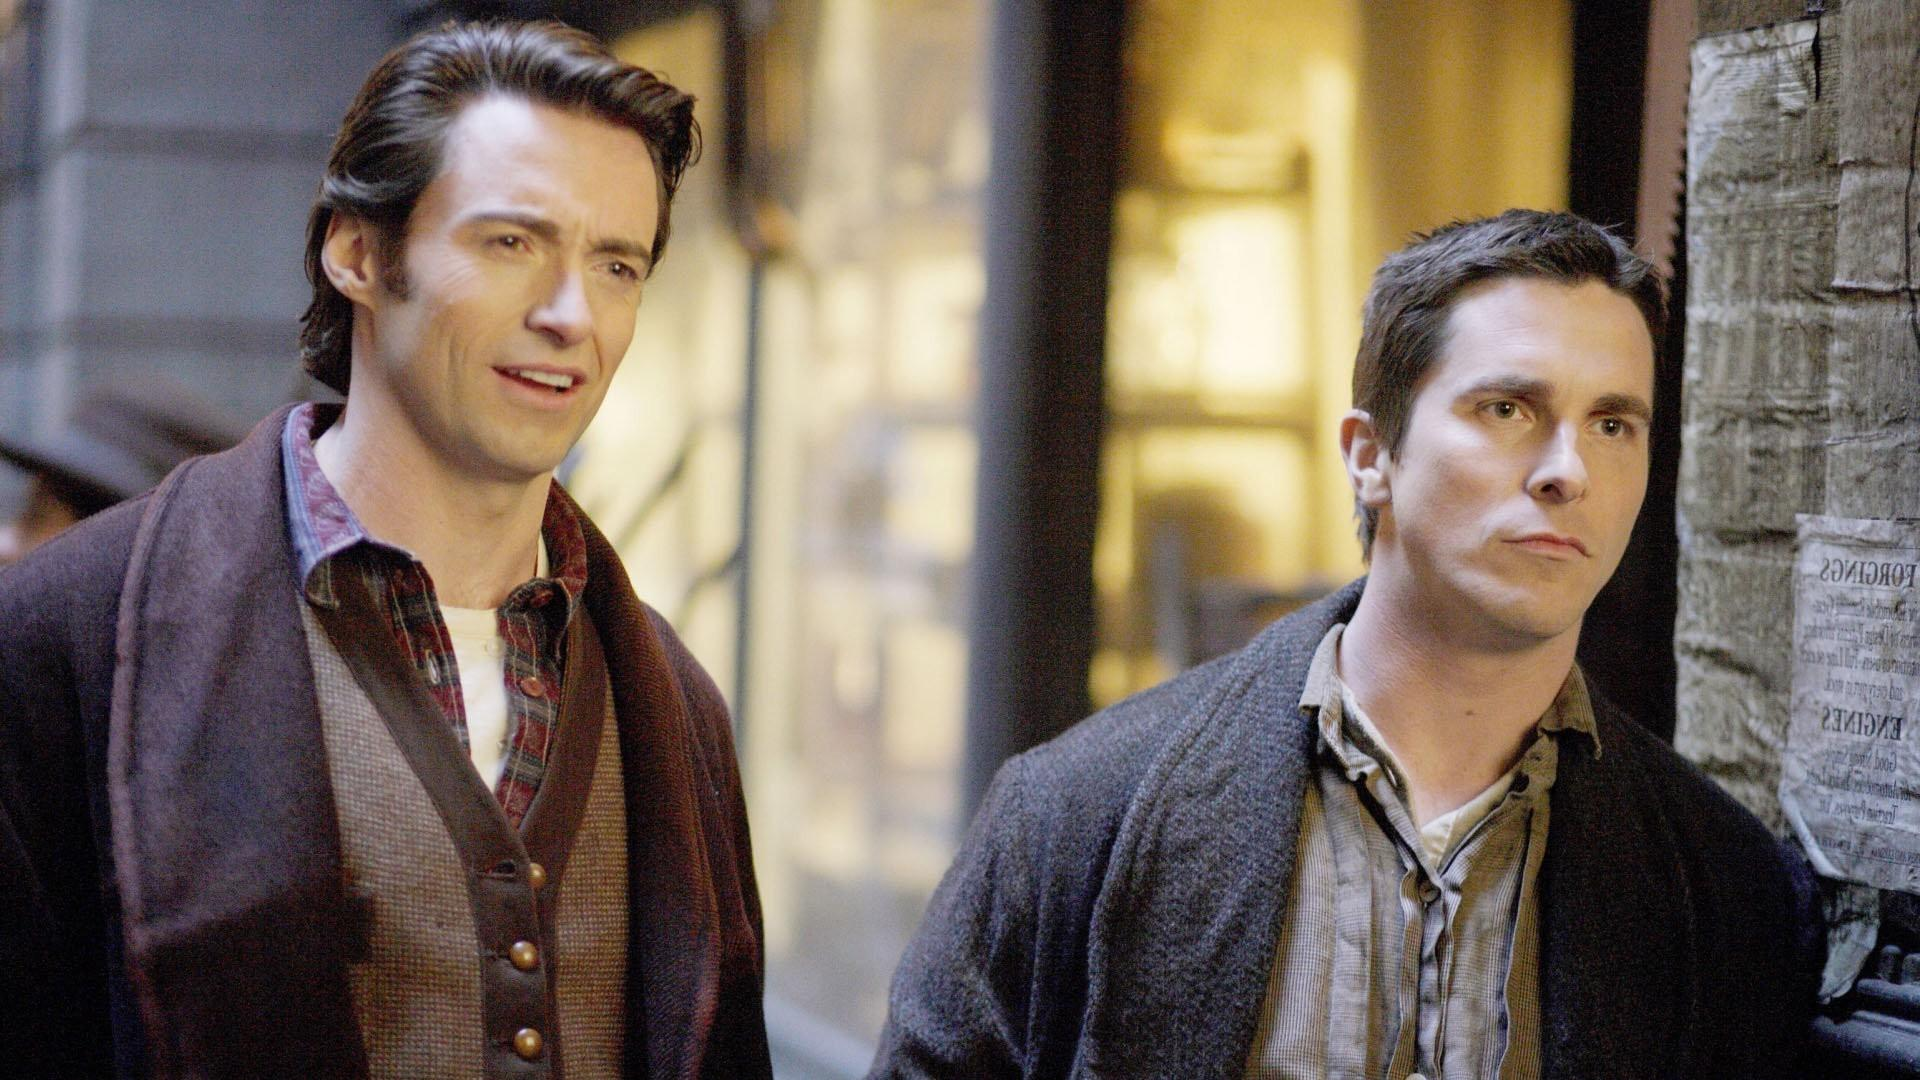 movies the prestige christian bale hugh jackman wallpaper and background